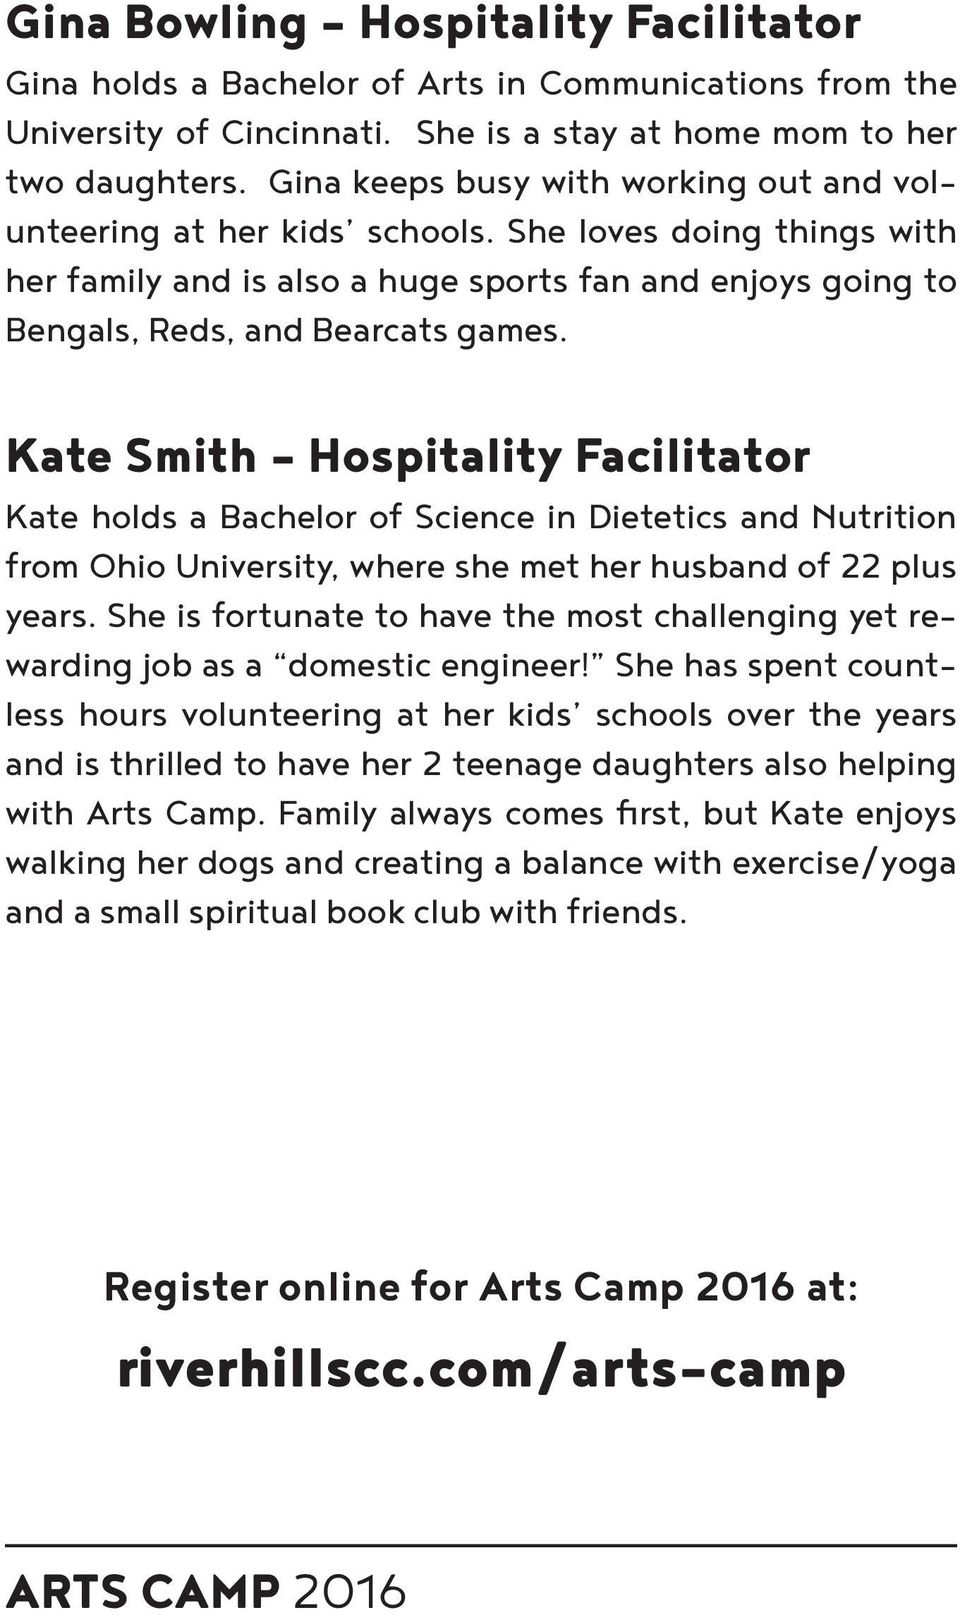 Kate Smith - Hospitality Facilitator Kate holds a Bachelor of Science in Dietetics and Nutrition from Ohio University, where she met her husband of 22 plus years.